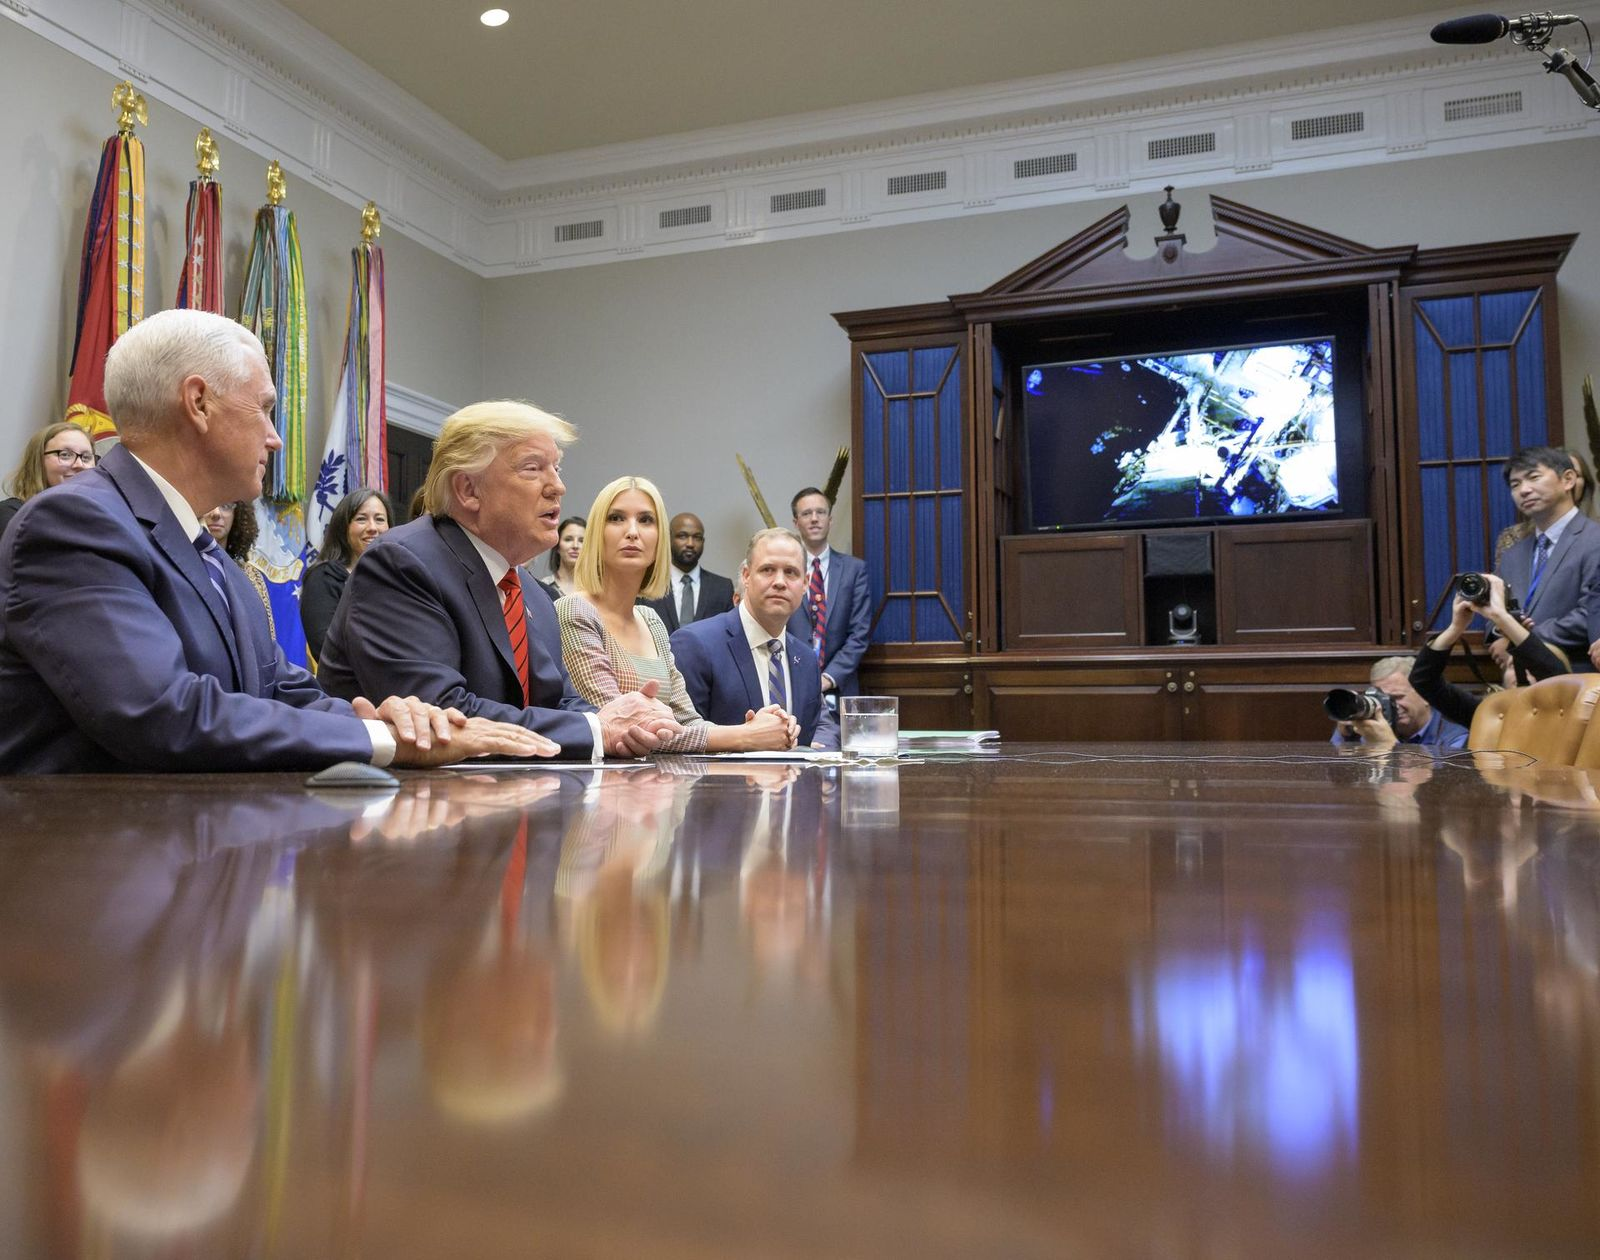 President Trump Calls Astronauts During First All-Woman Spacewalk (NASA/Bill Ingalls)